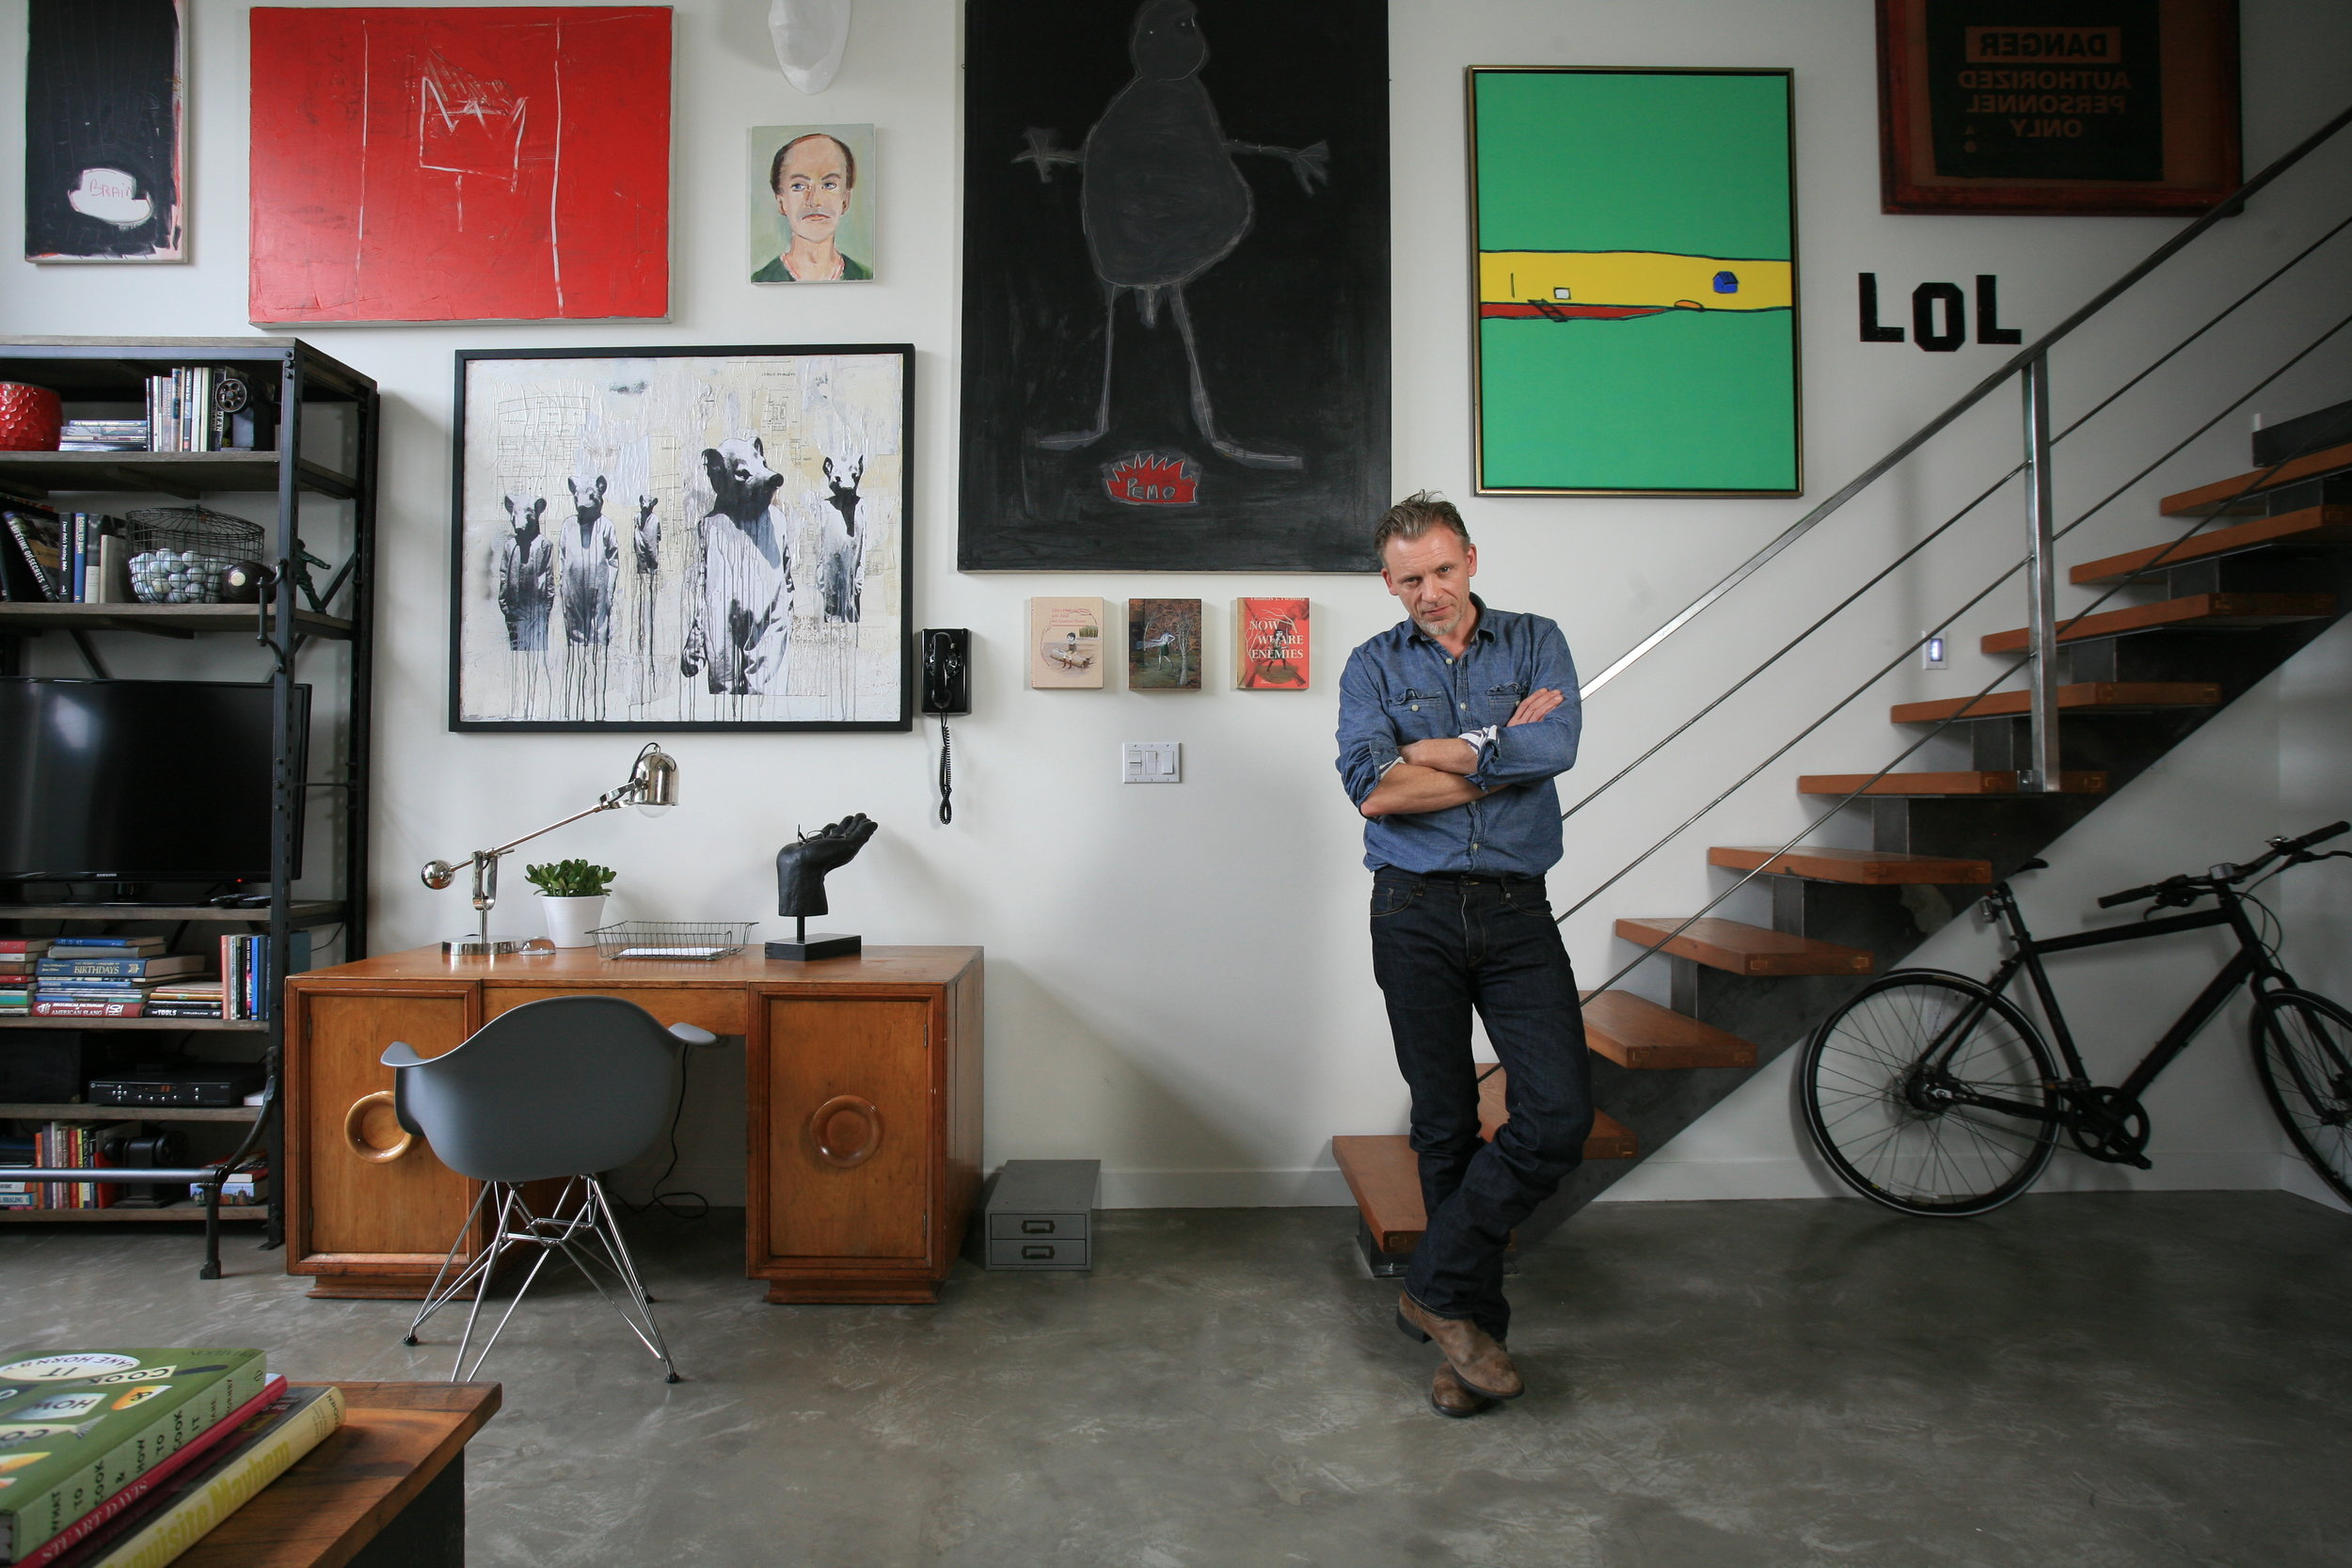 The homeowner stands in front of his wooden loft staircase, beside his home office and plethora of paintings on the wall.